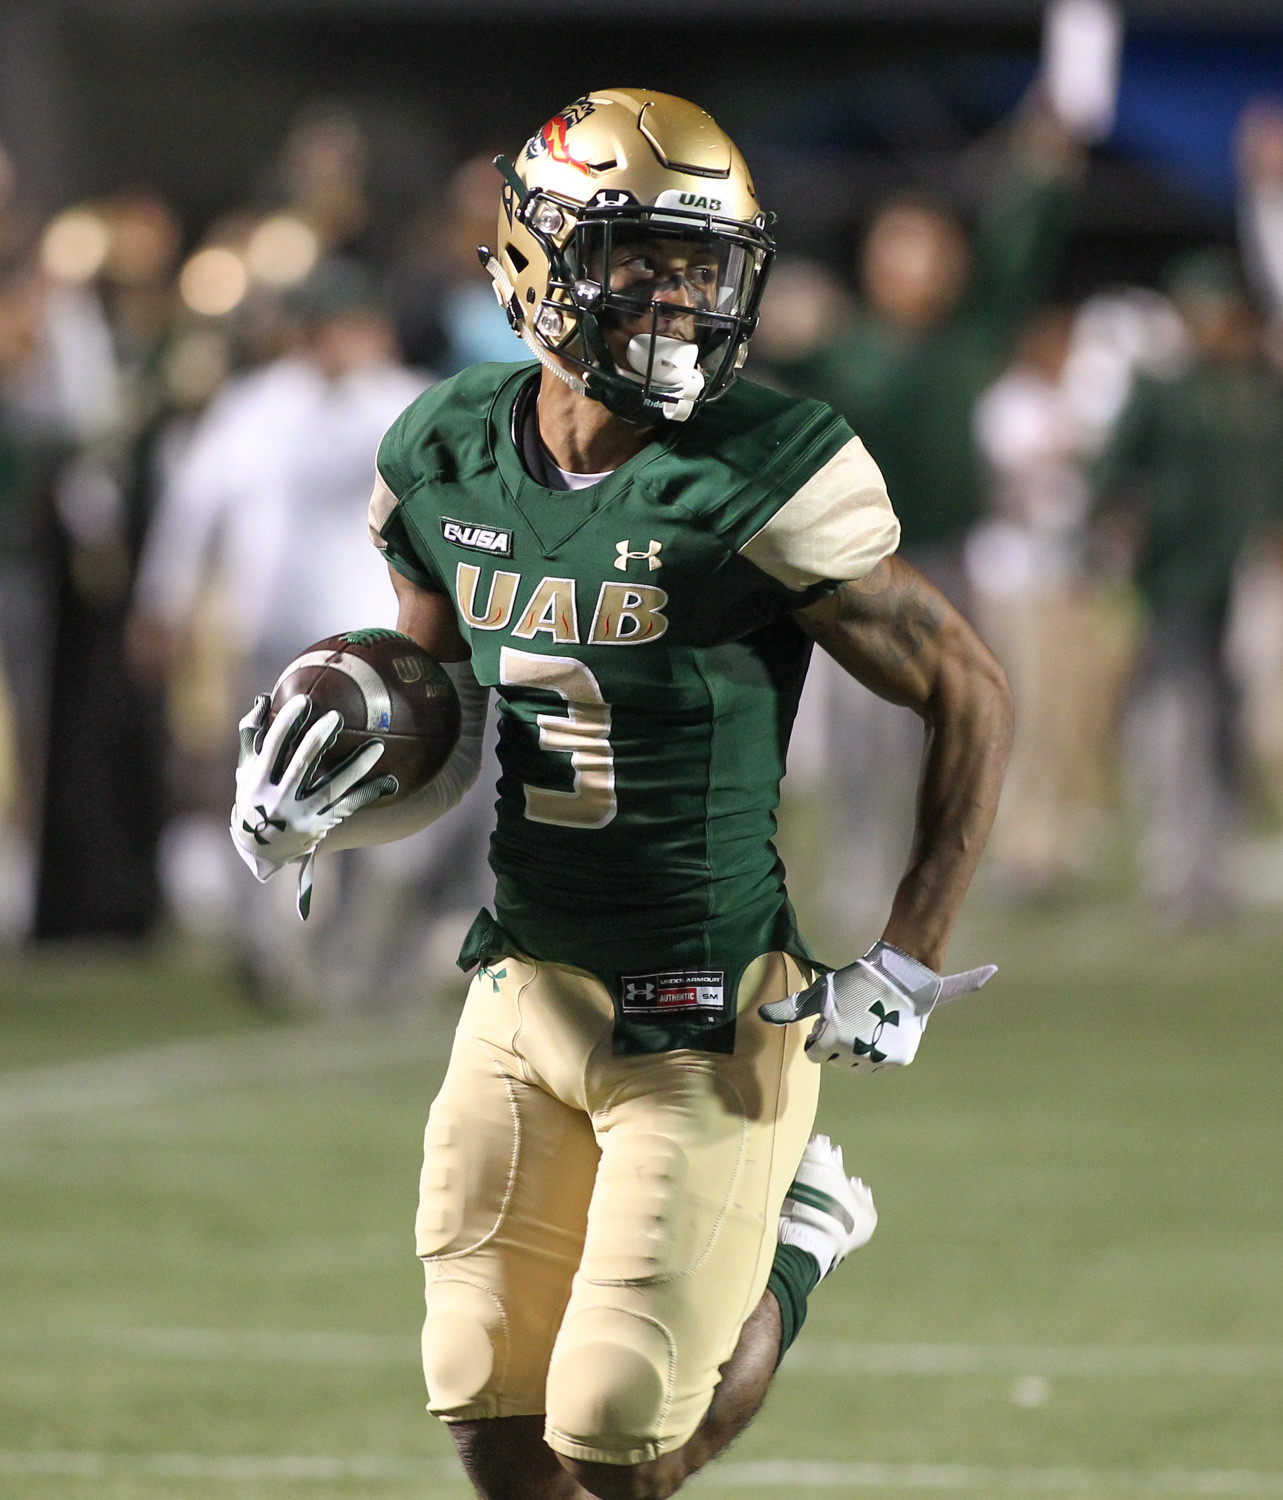 UAB wide receiver Andre Wilson scores a touchdown against UTSA at Legion Field in Birmingham, Ala., Saturday, Nov. 3, 2018.